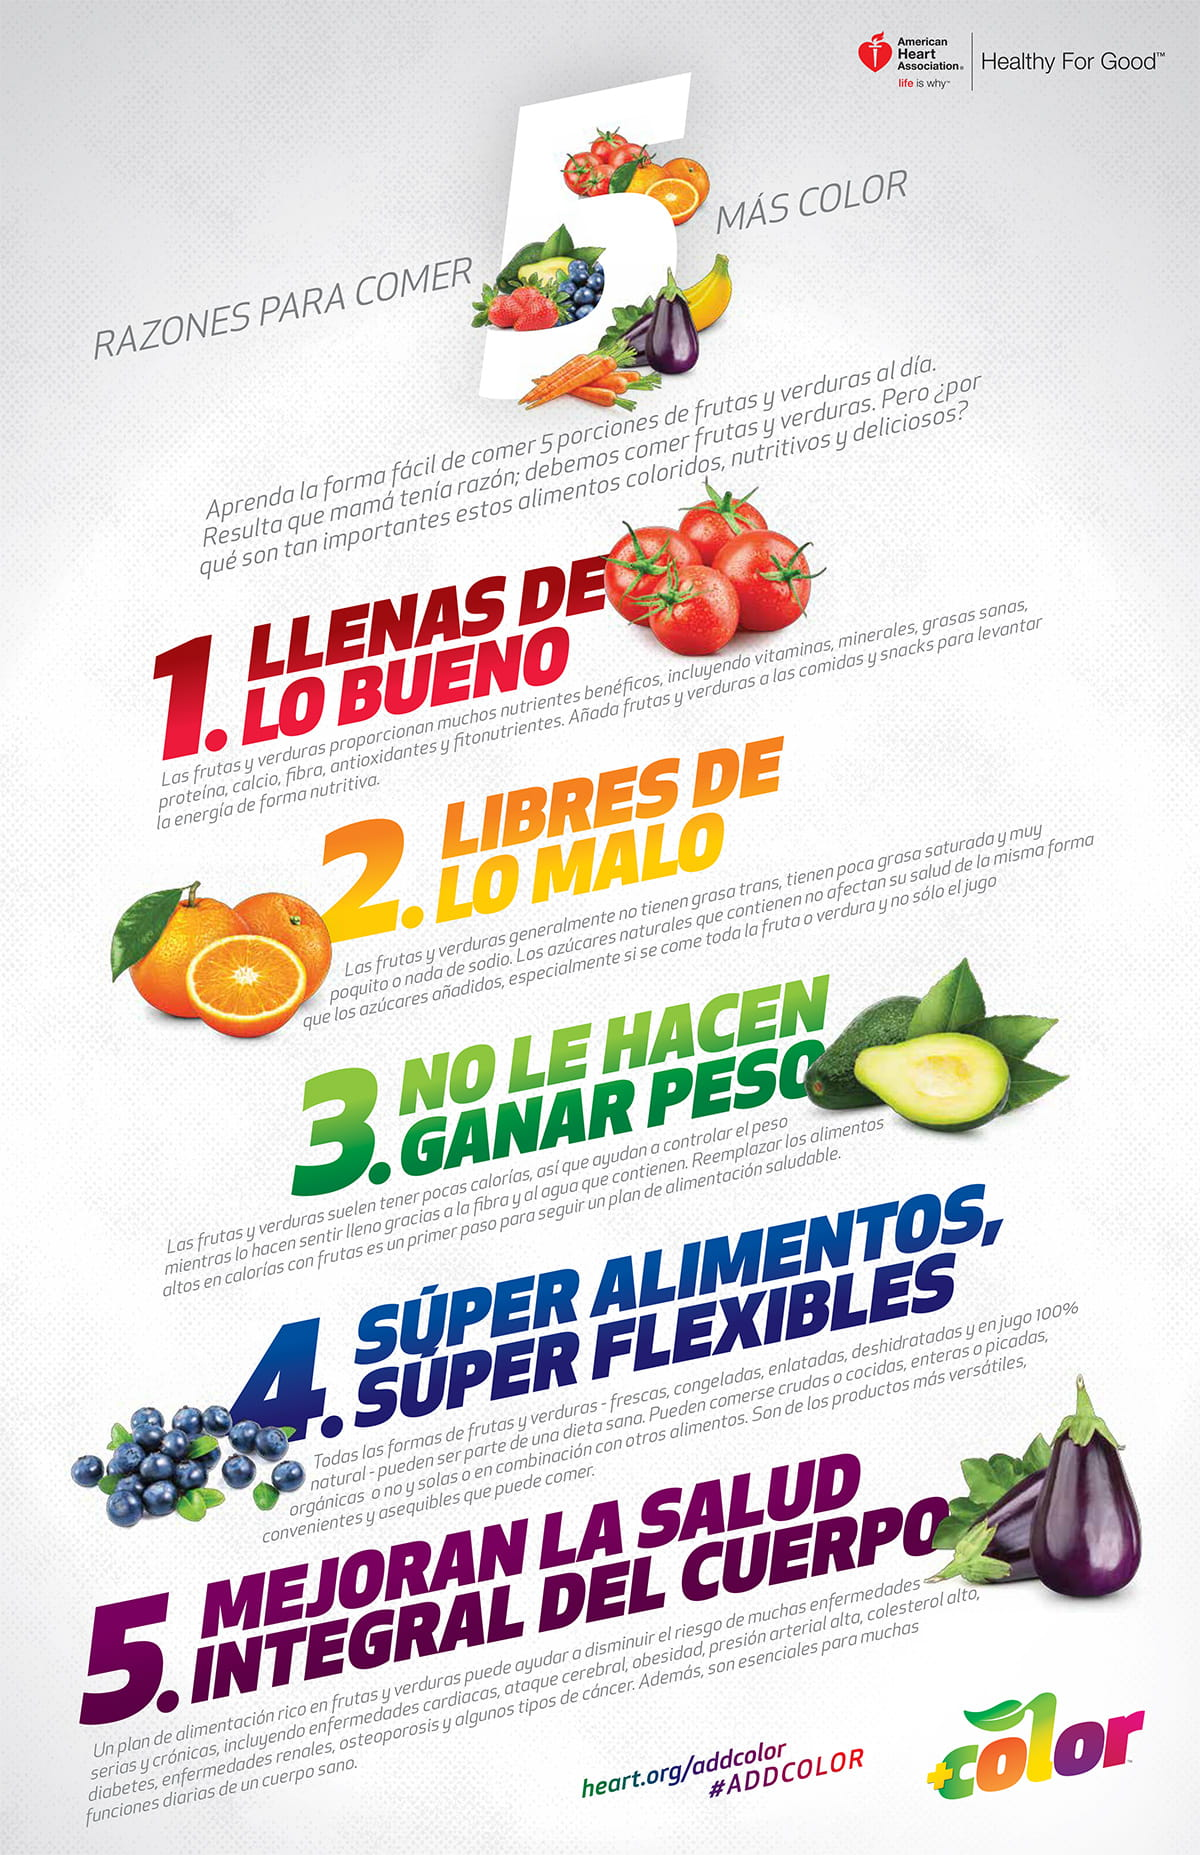 5 reasons to add color infographic in Spanish